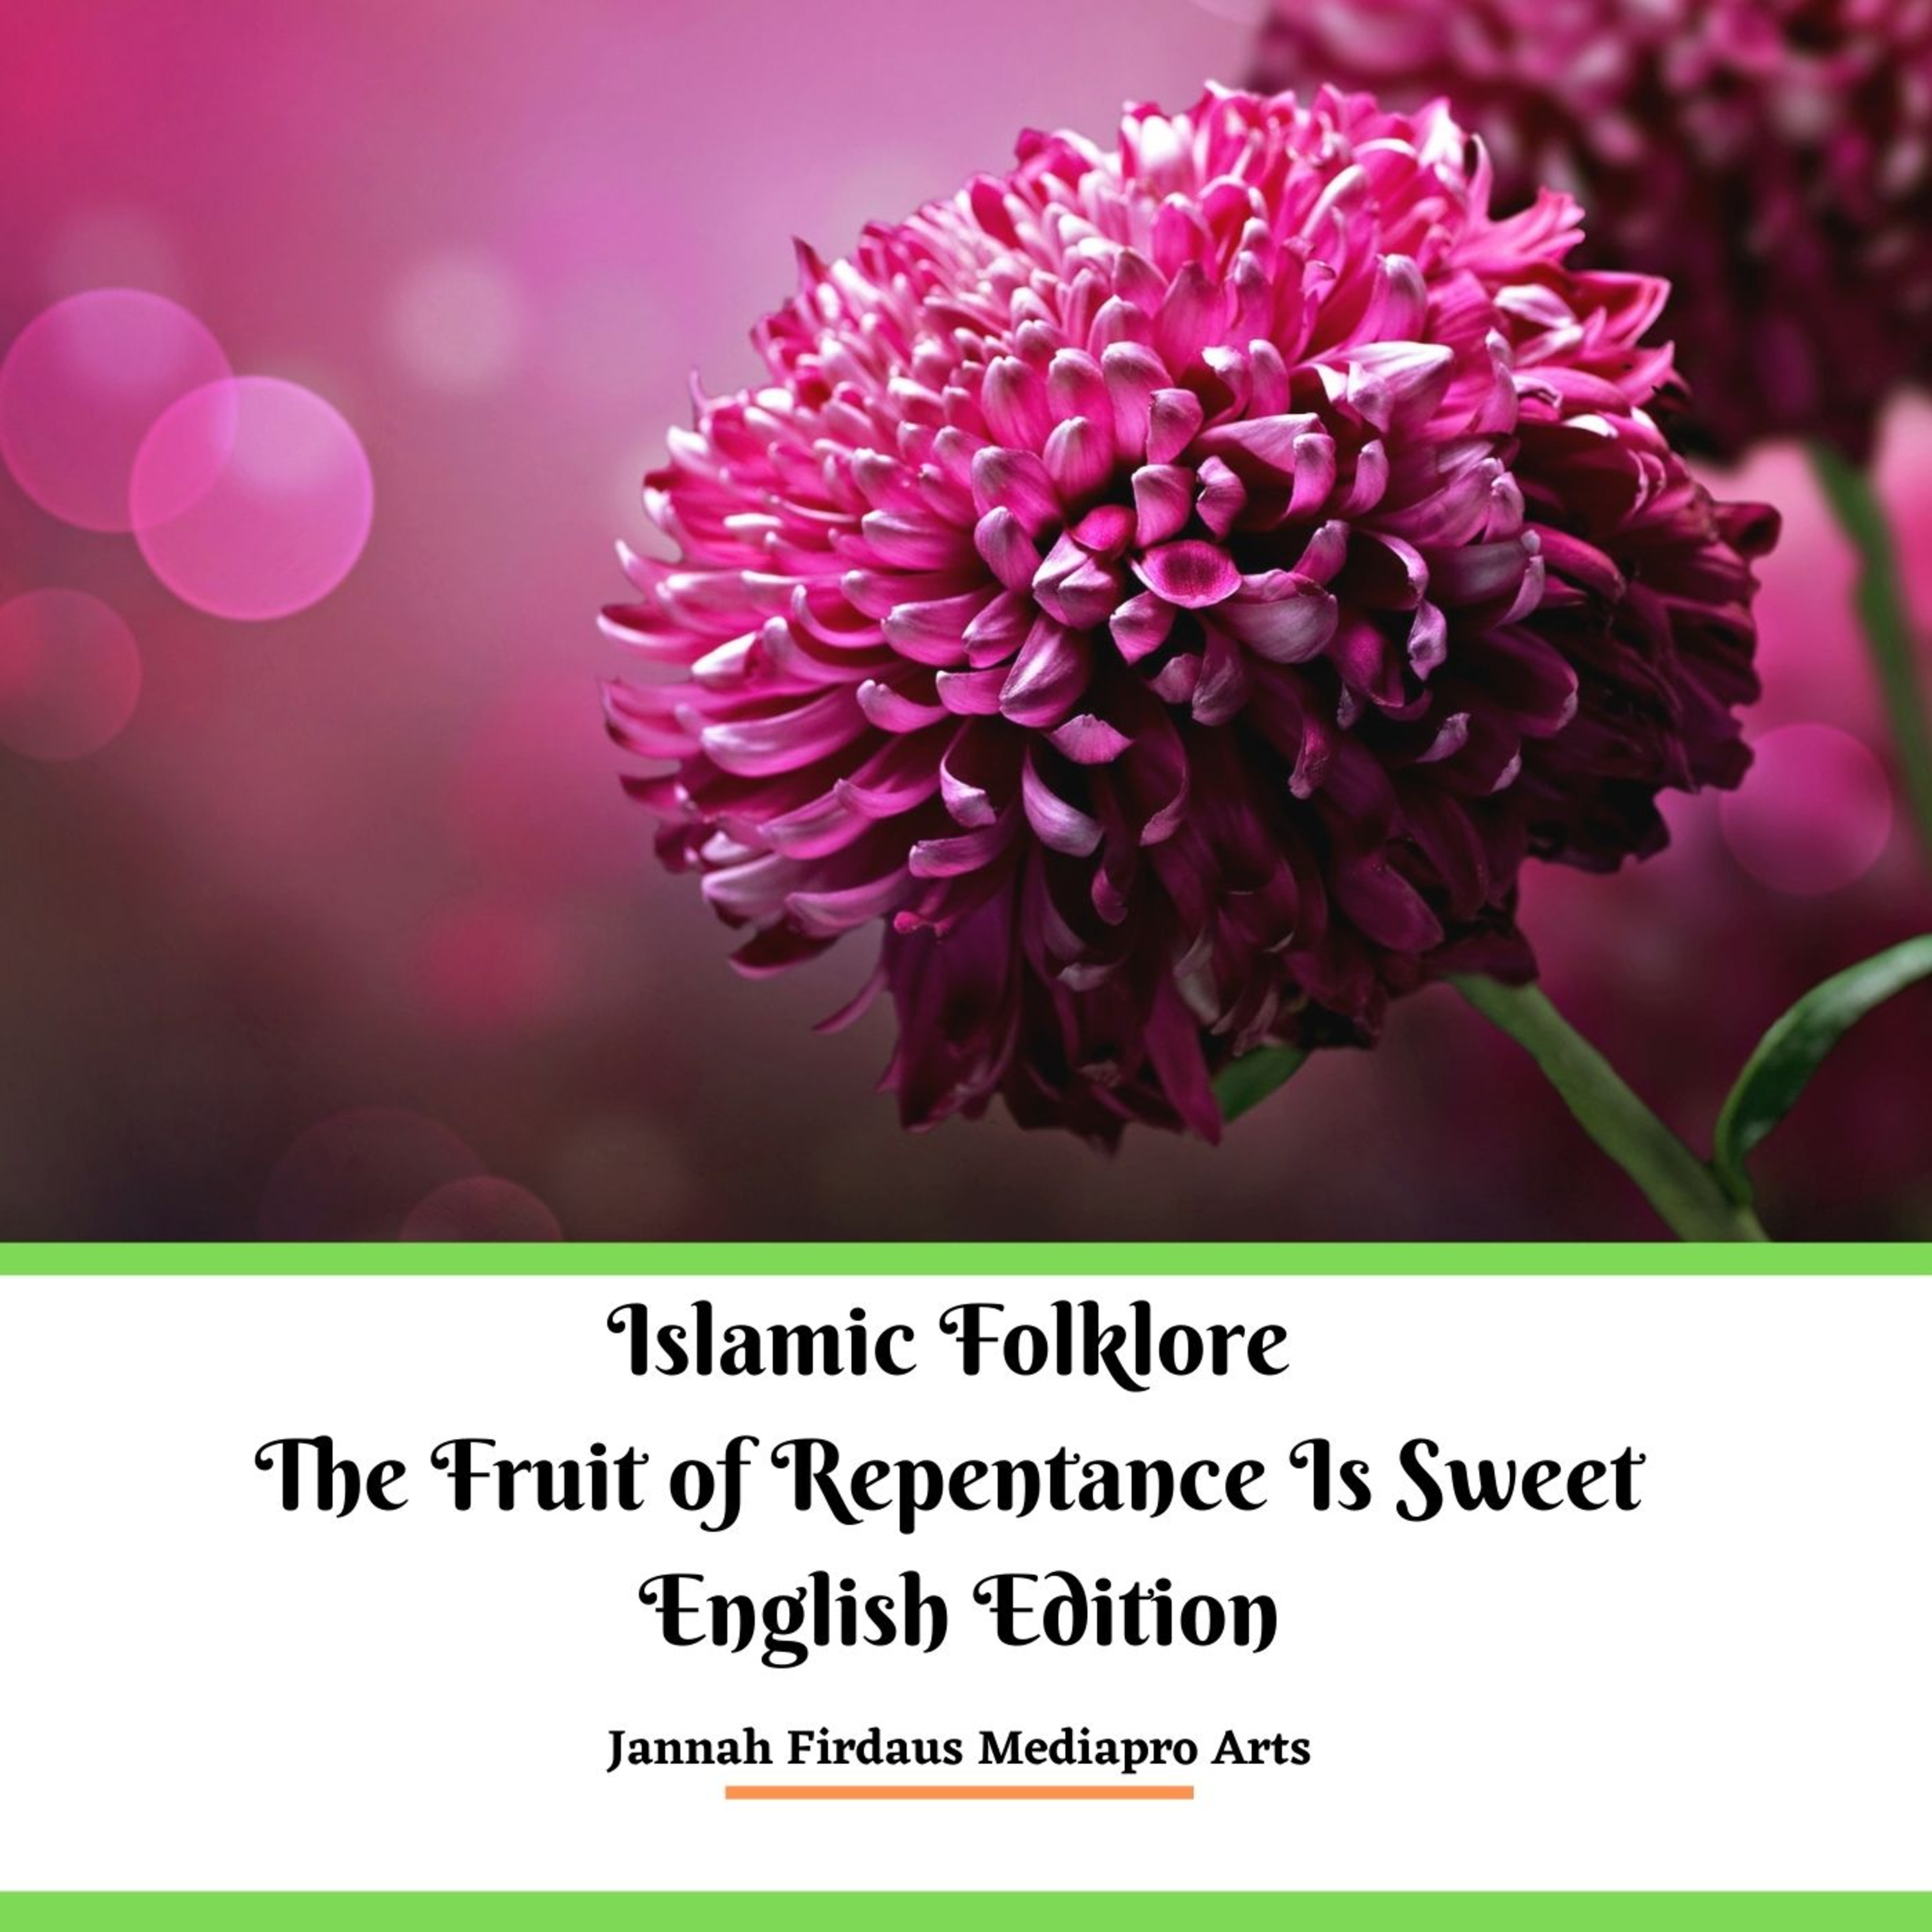 Islamic Folklore The Fruit of Repentance Is Sweet English Edition